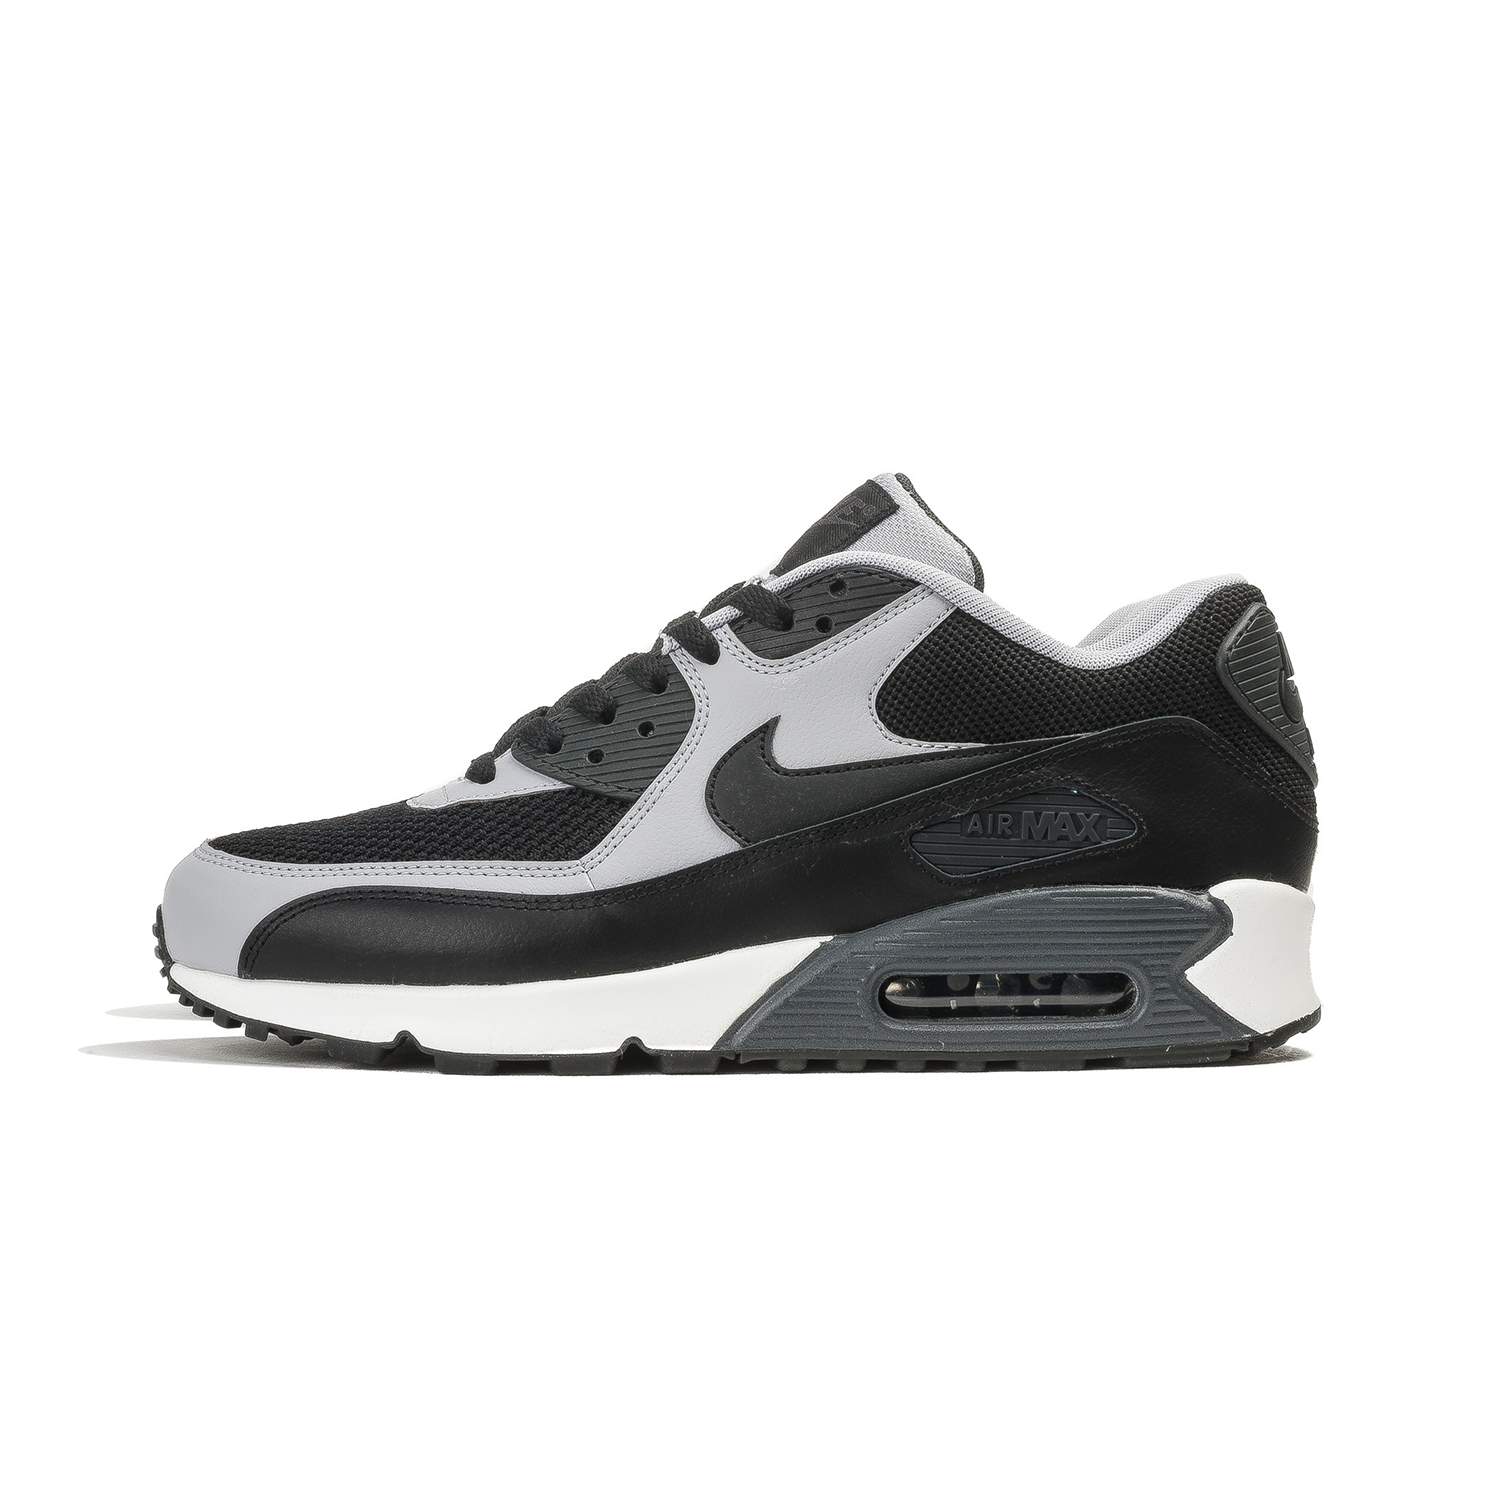 537384 053 nike air max 90 essential running shoes wolf